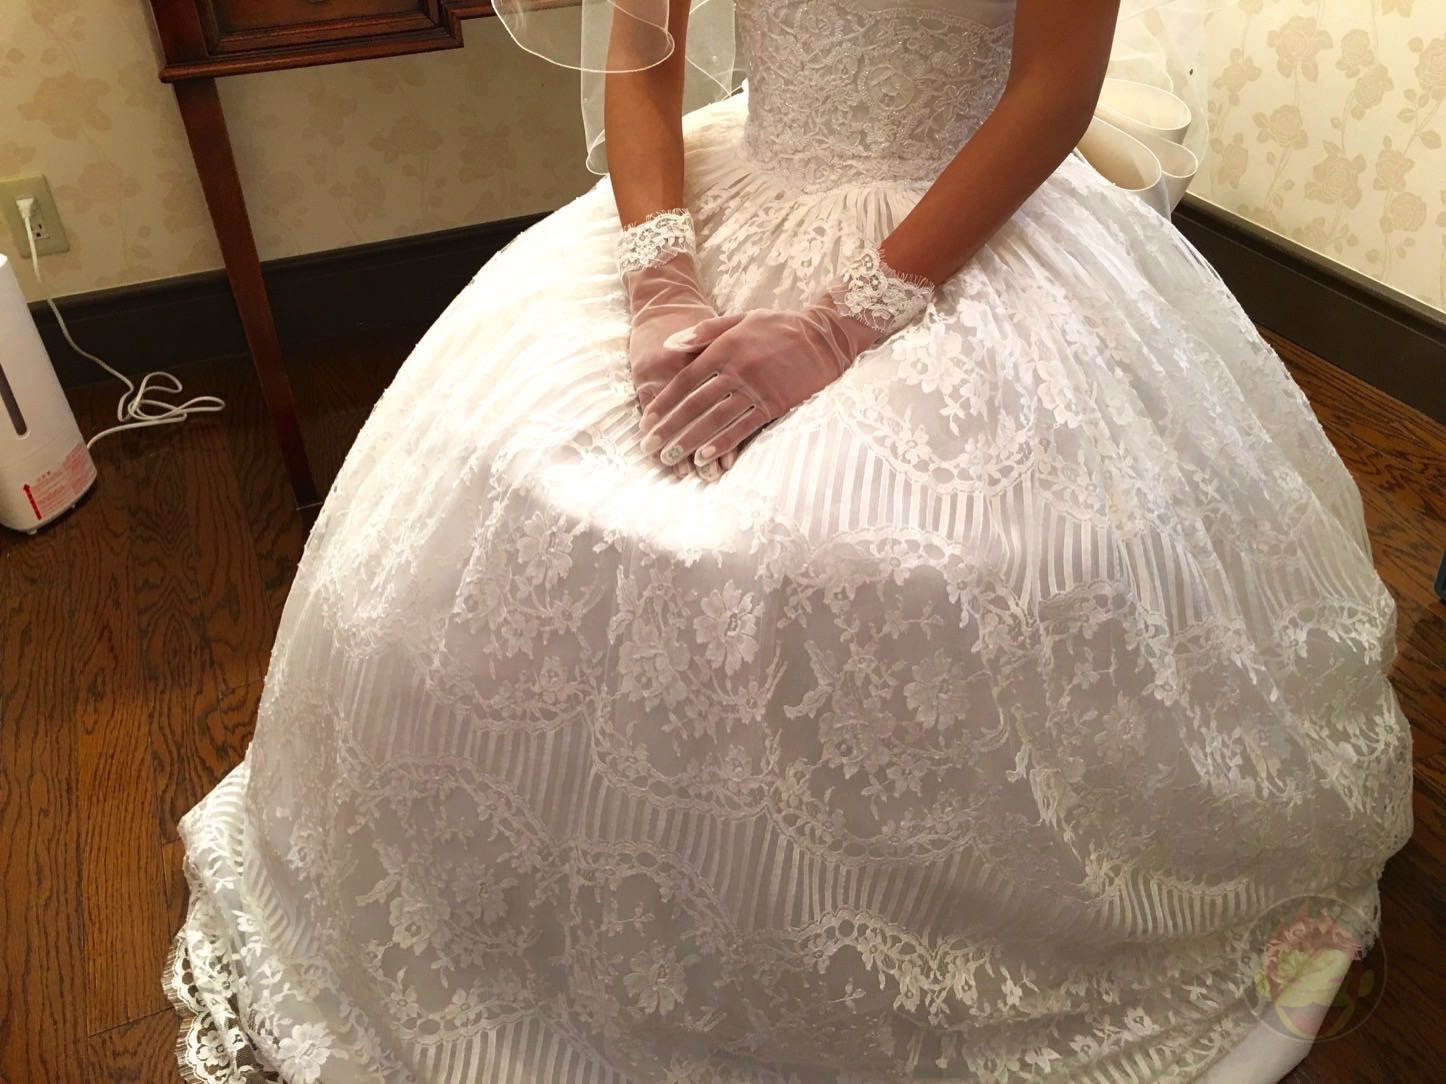 Heres the grooms dress